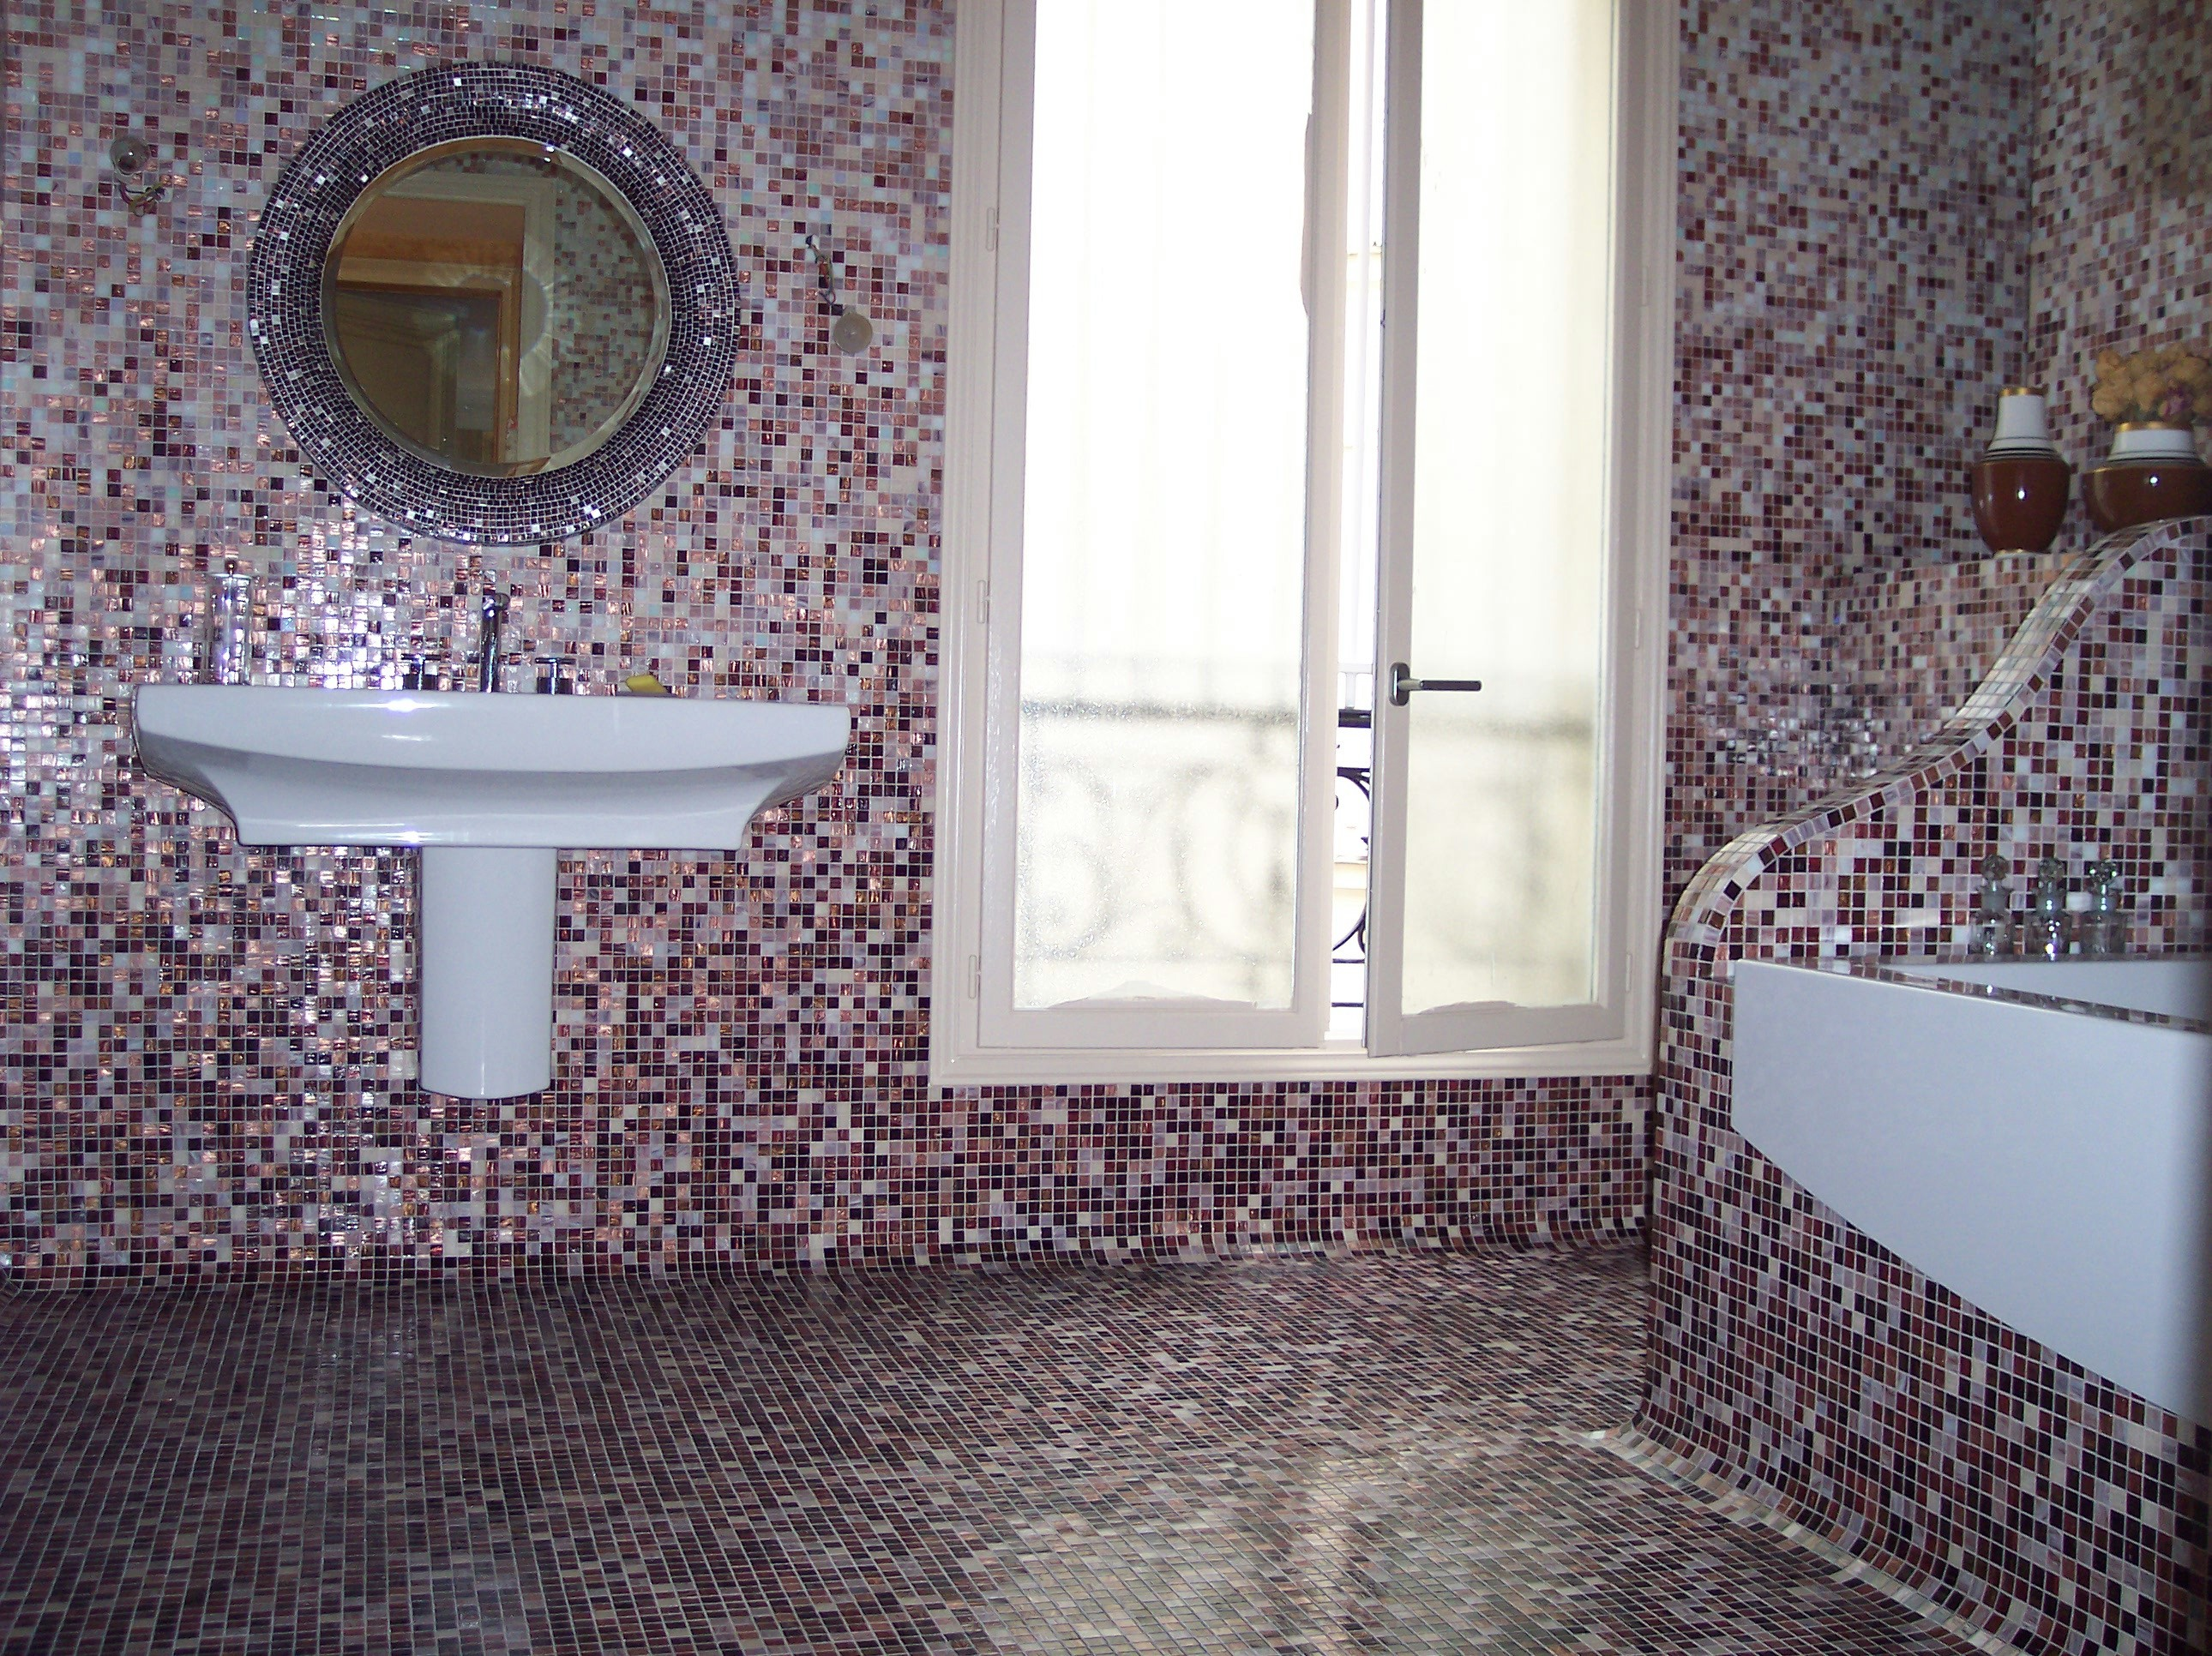 Floor mosaic with rounded corners, wall in andamento and sculpted mosaic mirror